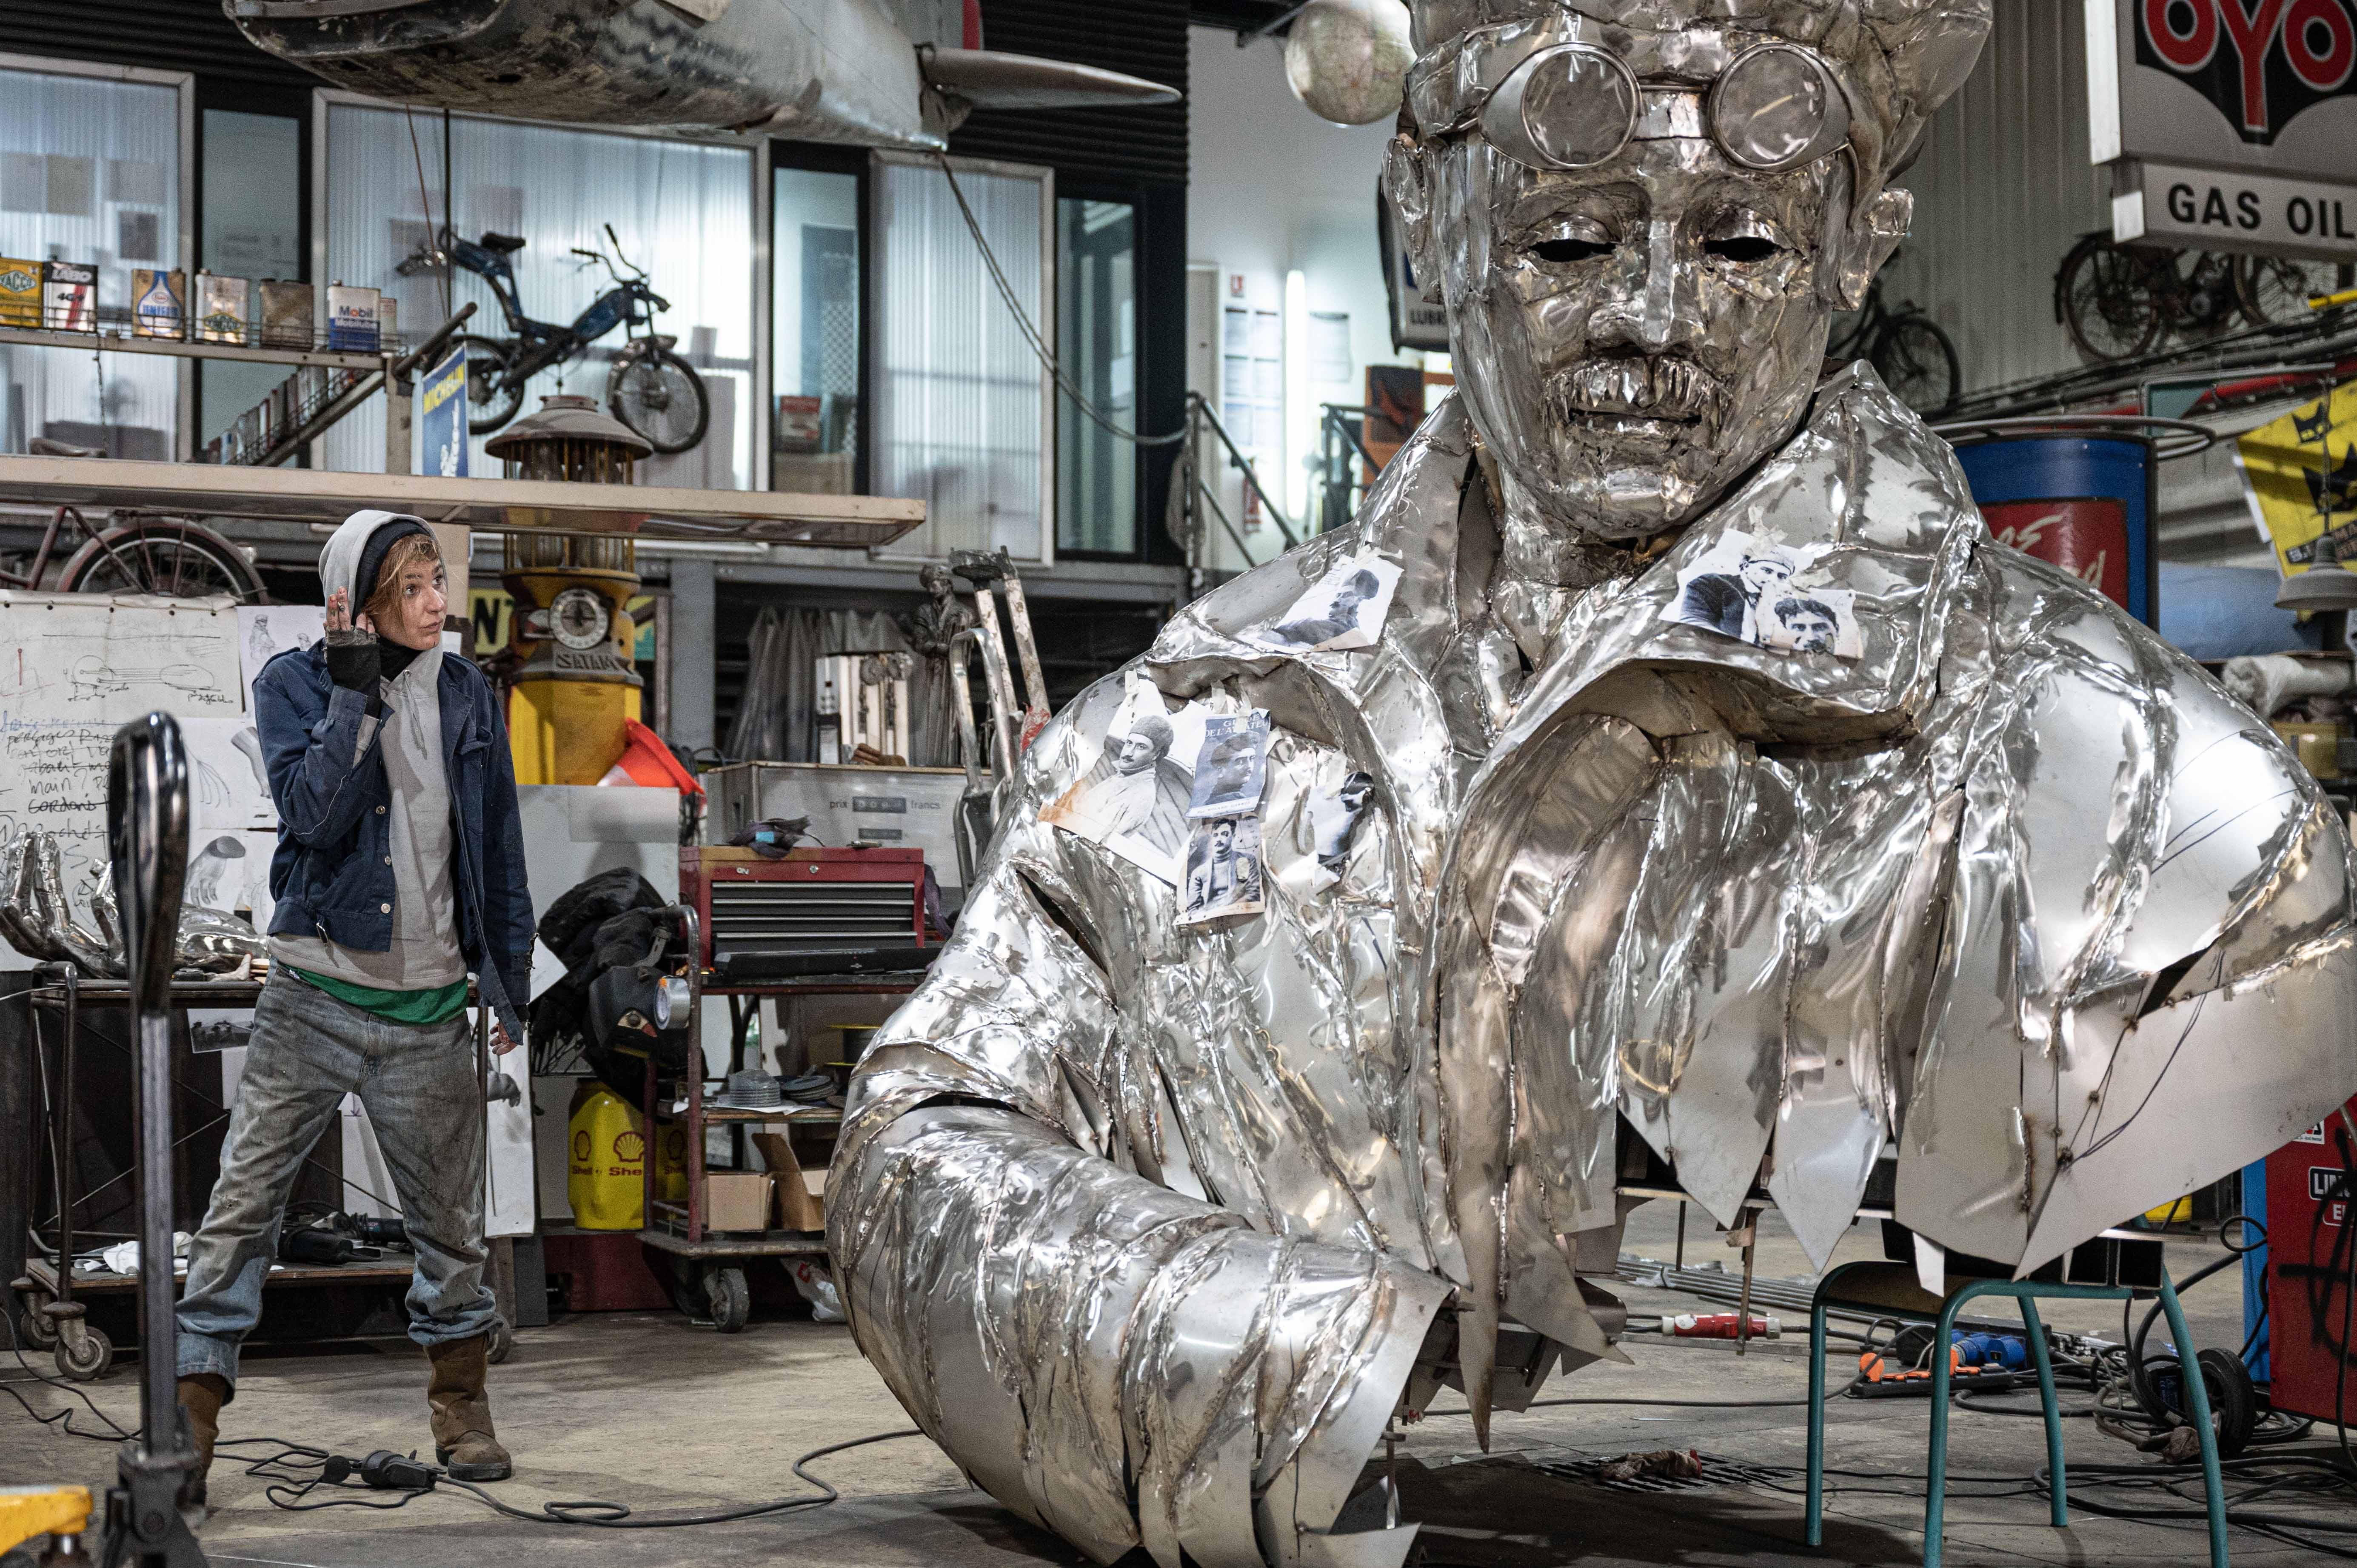 Caroline Brisset in her studio in Marseille in front of her monumental sculpture of the aviator Roland Garros